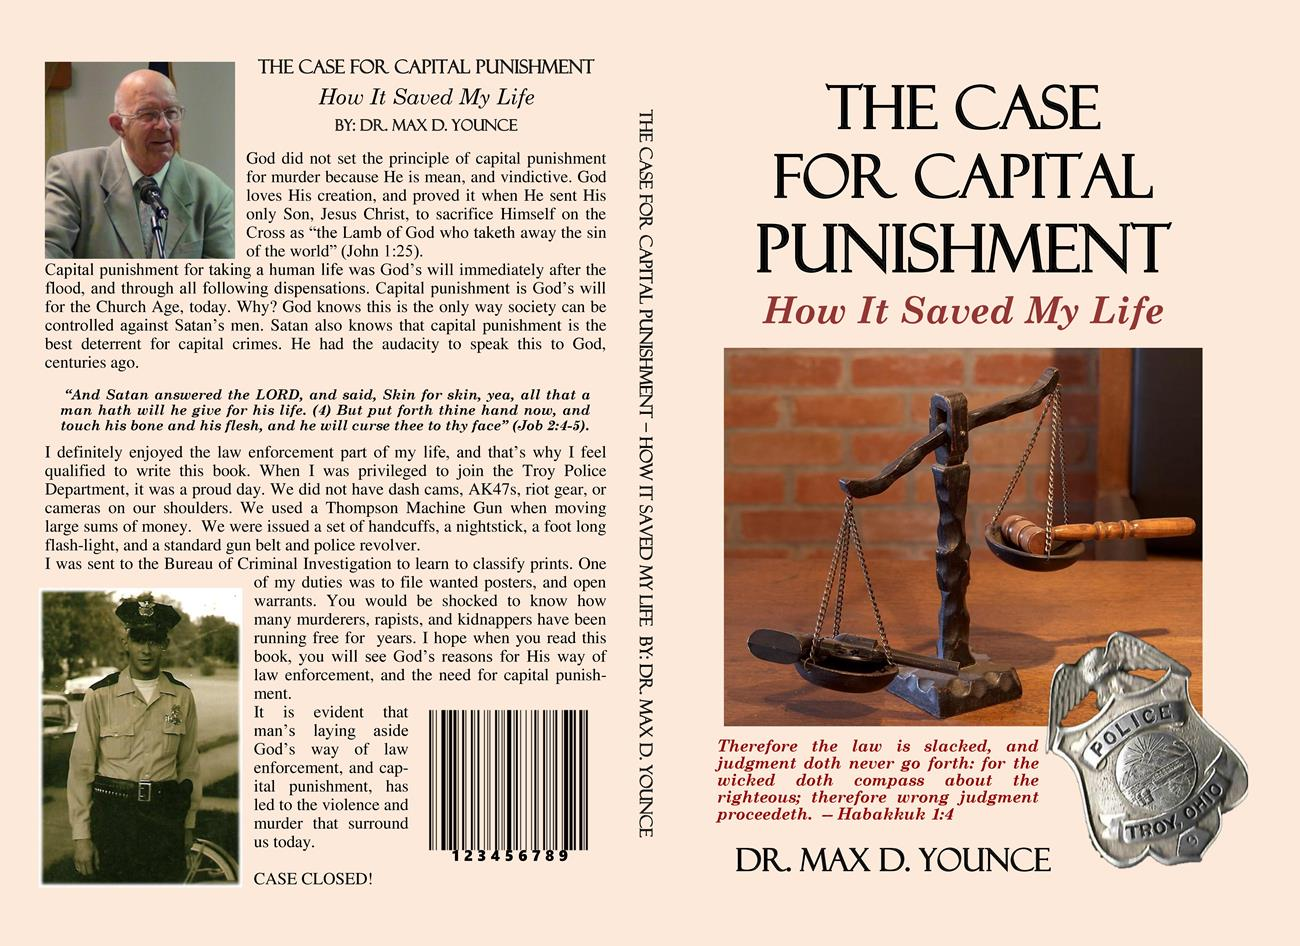 The Case for Capital Punishment, How It Saved My Life